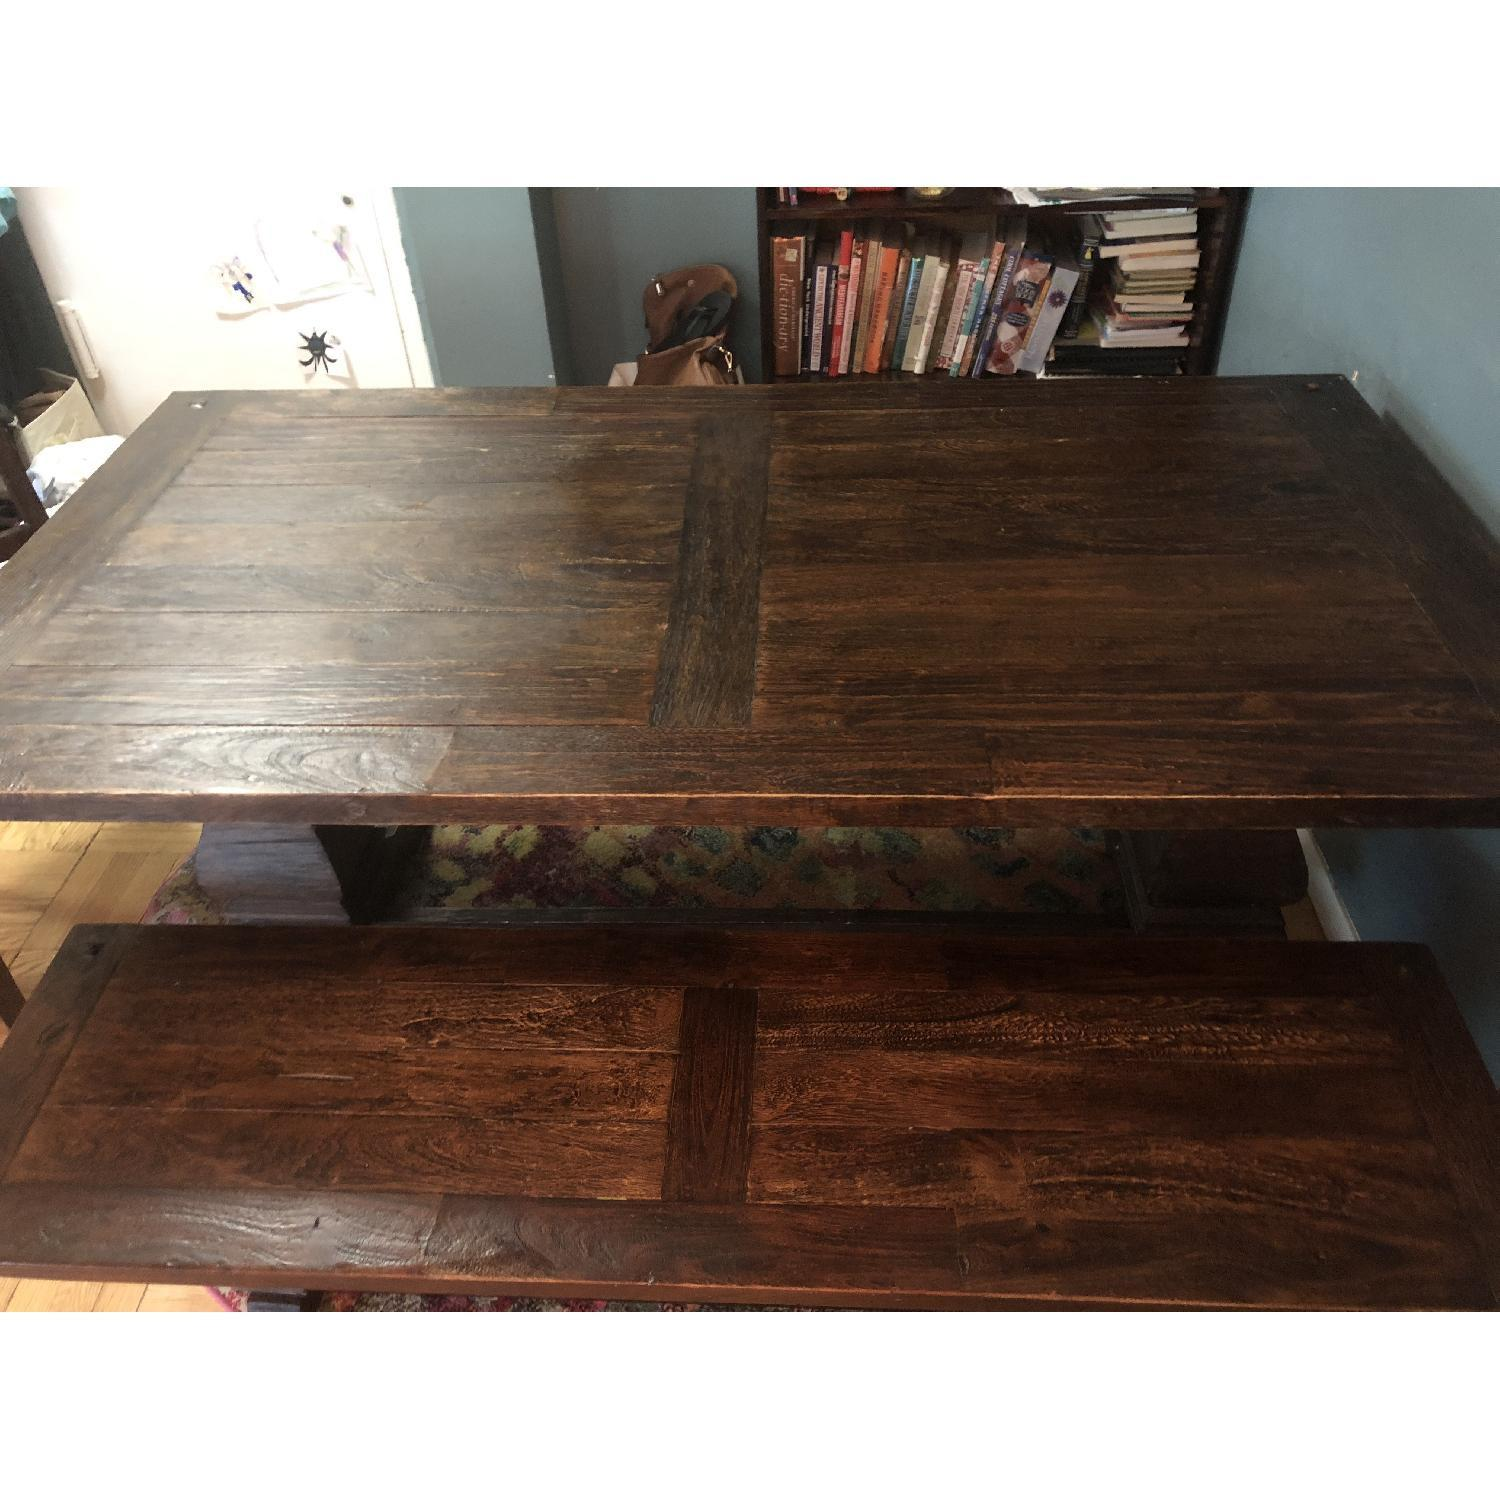 Tristan Wood Dining Table w/ 1 Bench & 4 Chairs - image-2